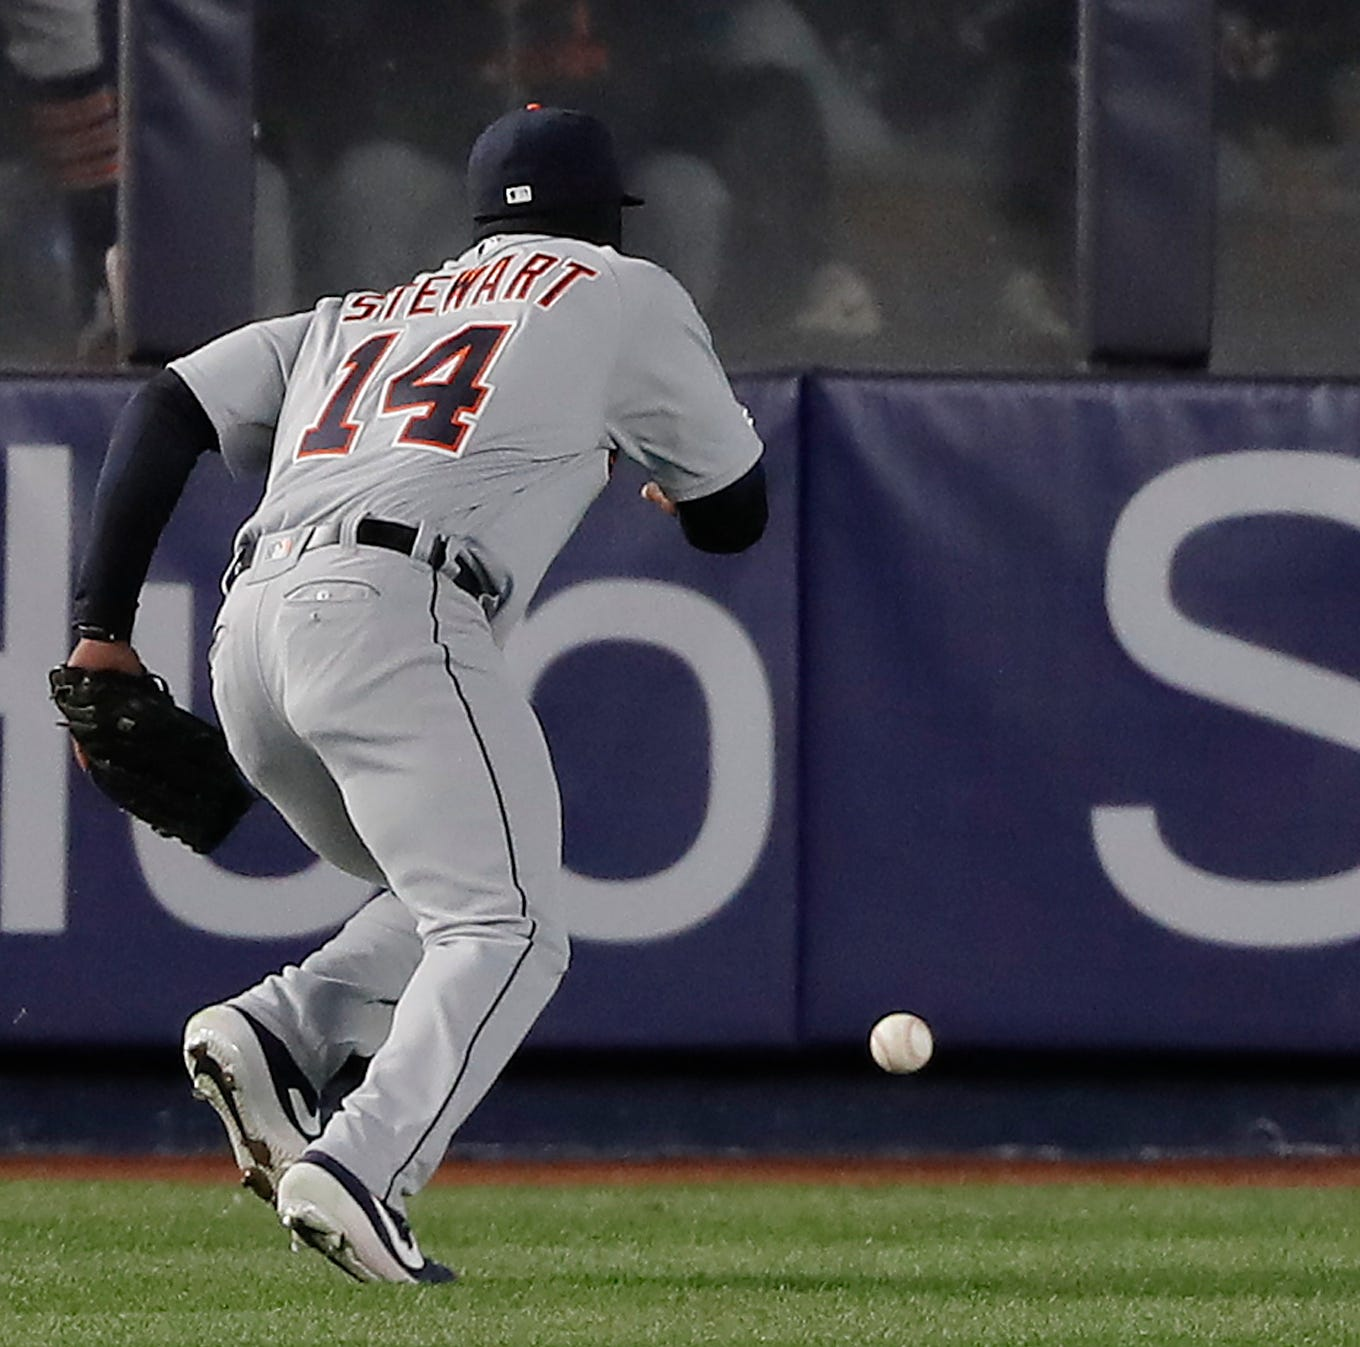 'We had opportunities': Tigers can't get unstuck against short-staffed Yankees